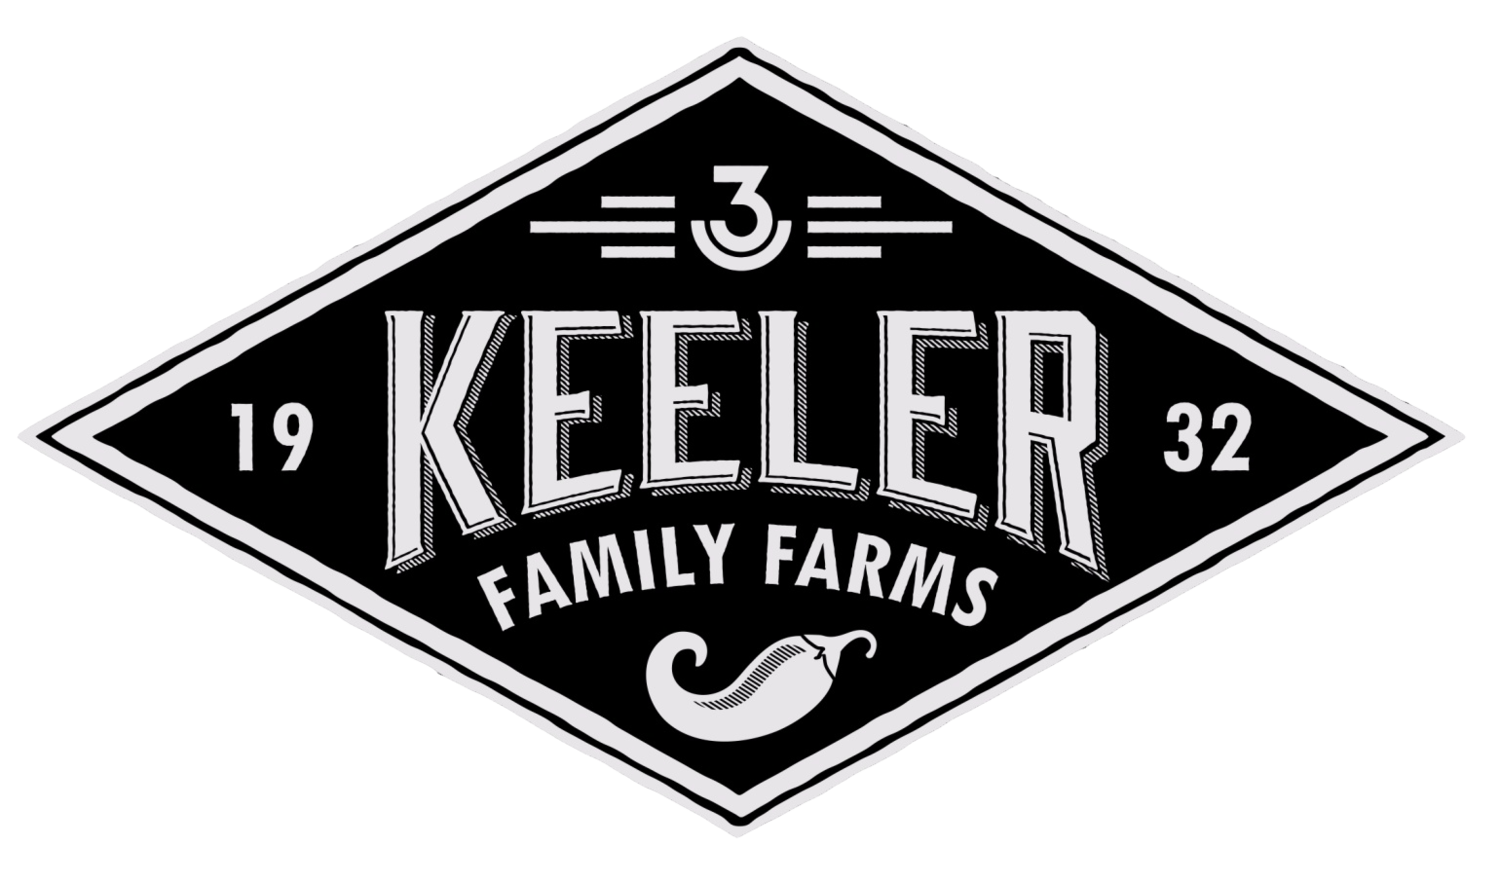 Keeler Family Farms